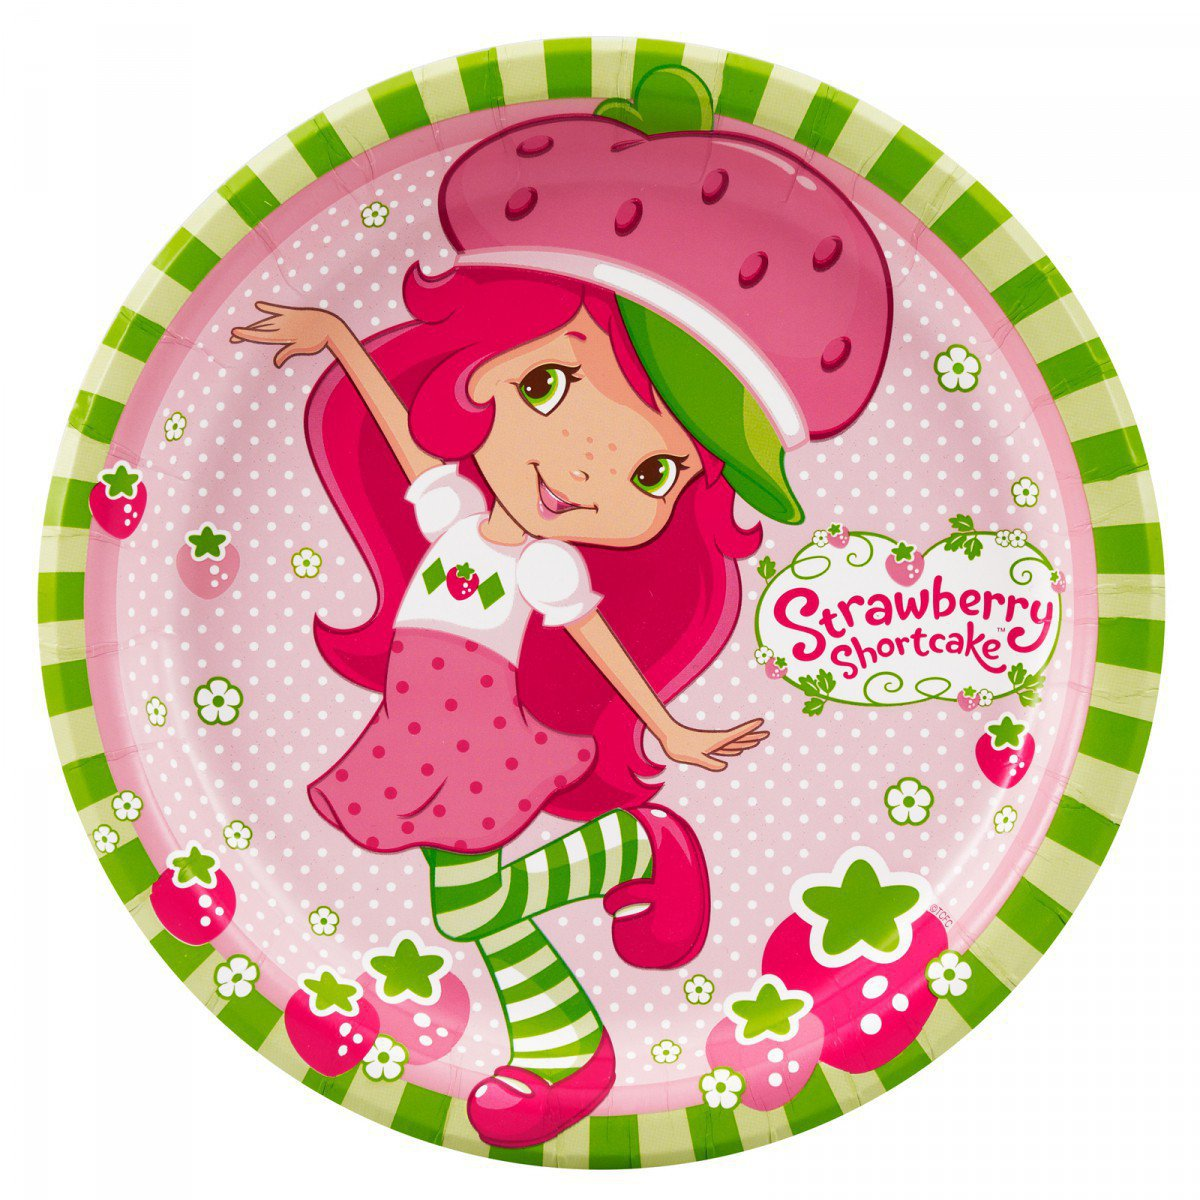 Strawberry Shortcake Free Printable Birthday Invitations 2015